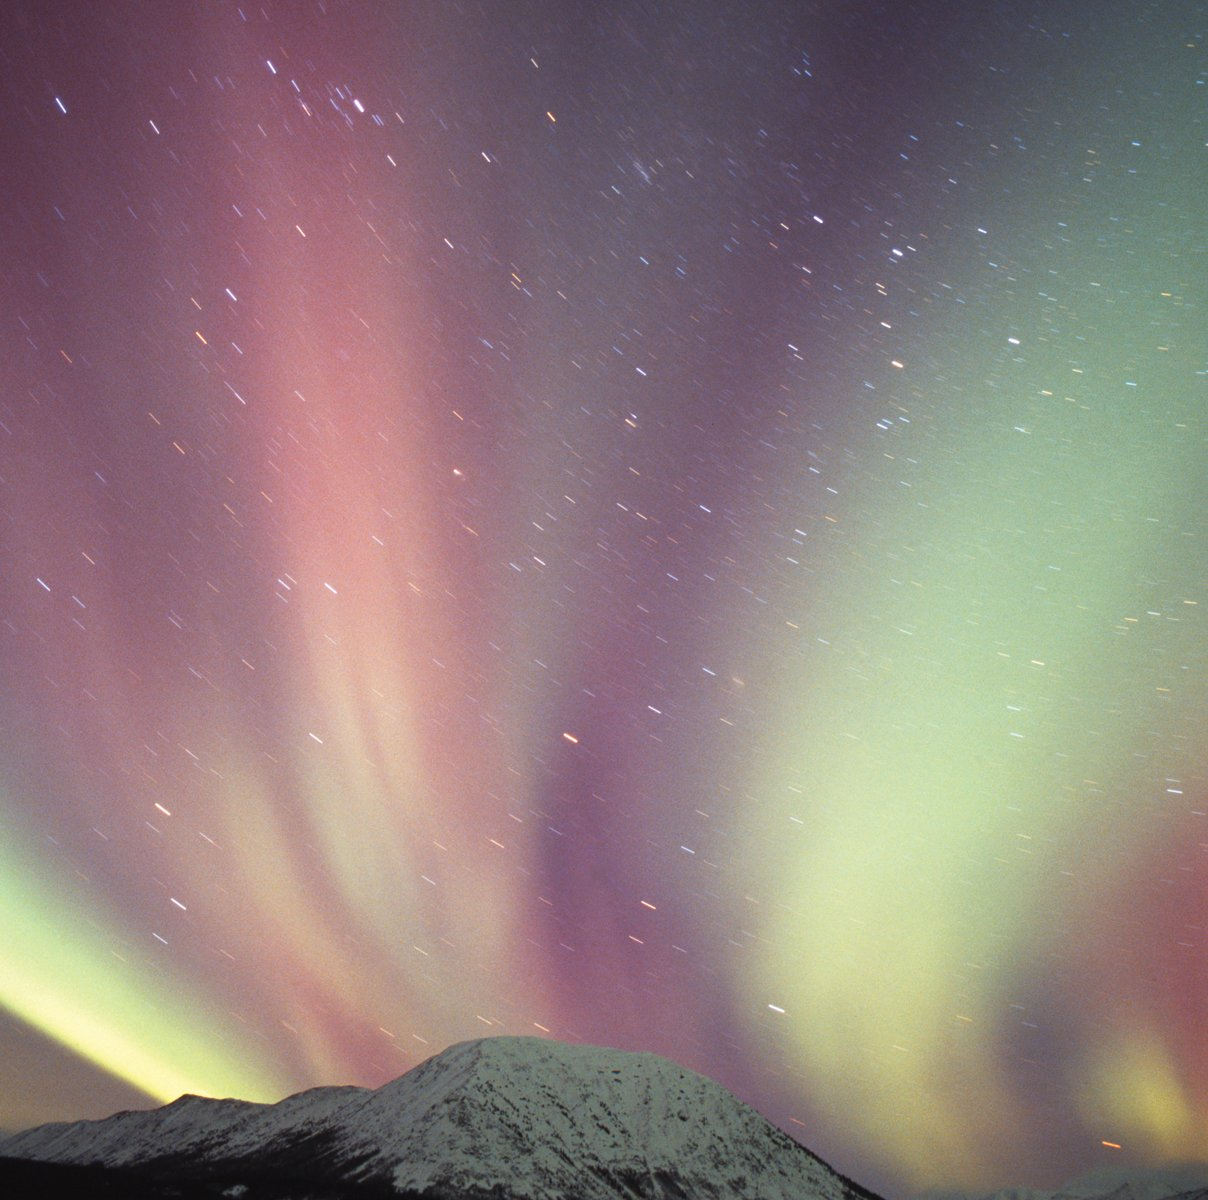 JP London SQM2022PS Peel and Stick Removable Wall Decal Sticker Mural Aurora Borealis Northern Lights At 6' High By 6' Wide by JP London